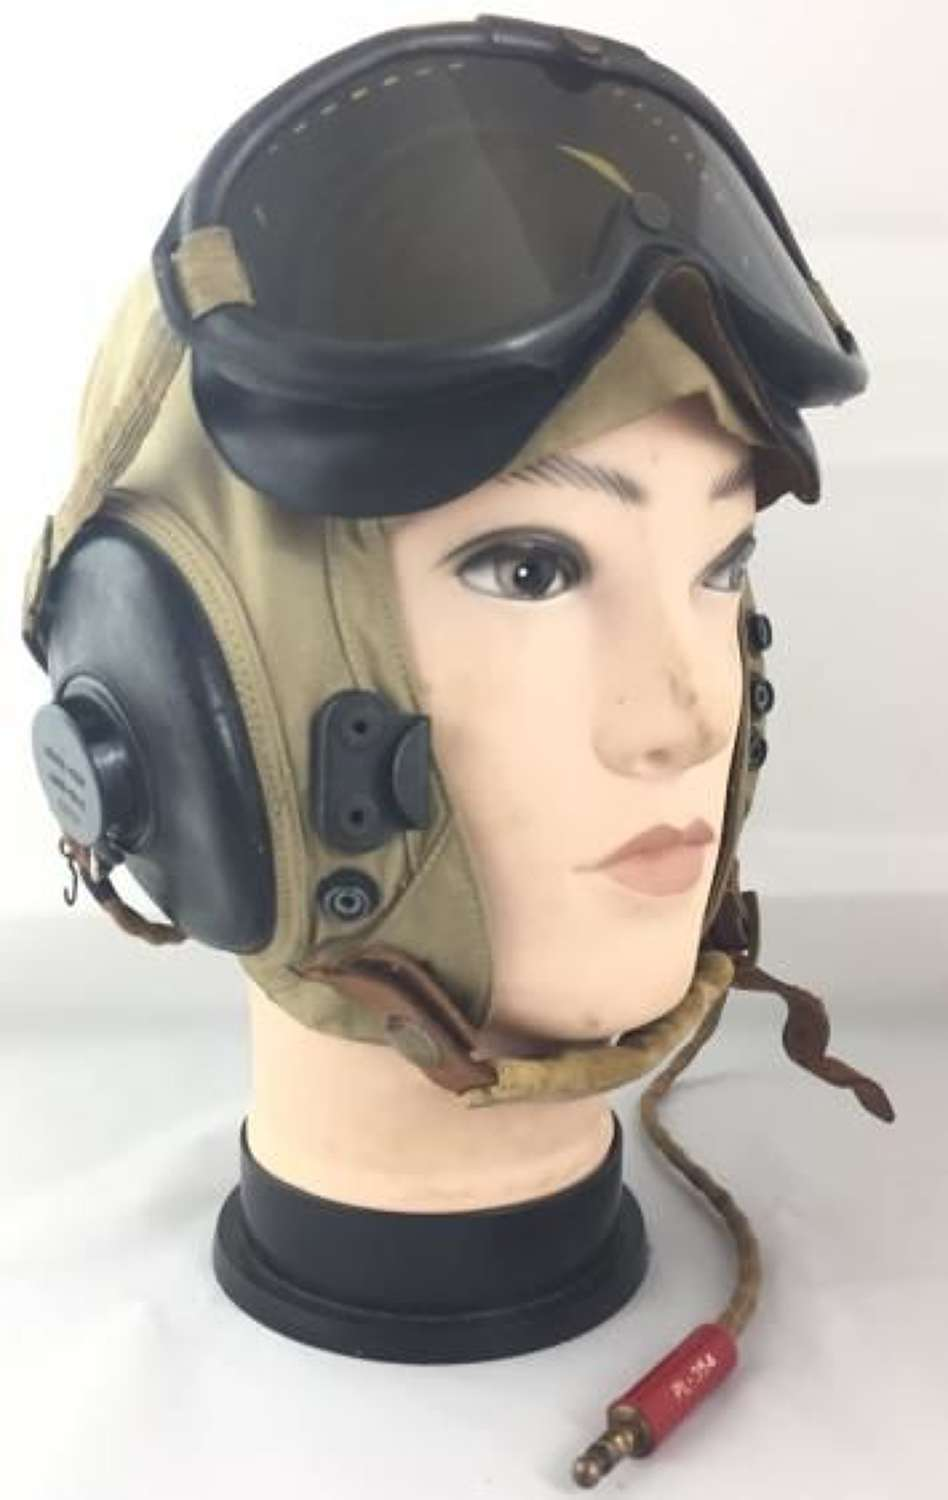 Original WW2 USAAF Summer Flying Helmet A-NH-15 + ANB-H-1 Receivers  - Extra Large!